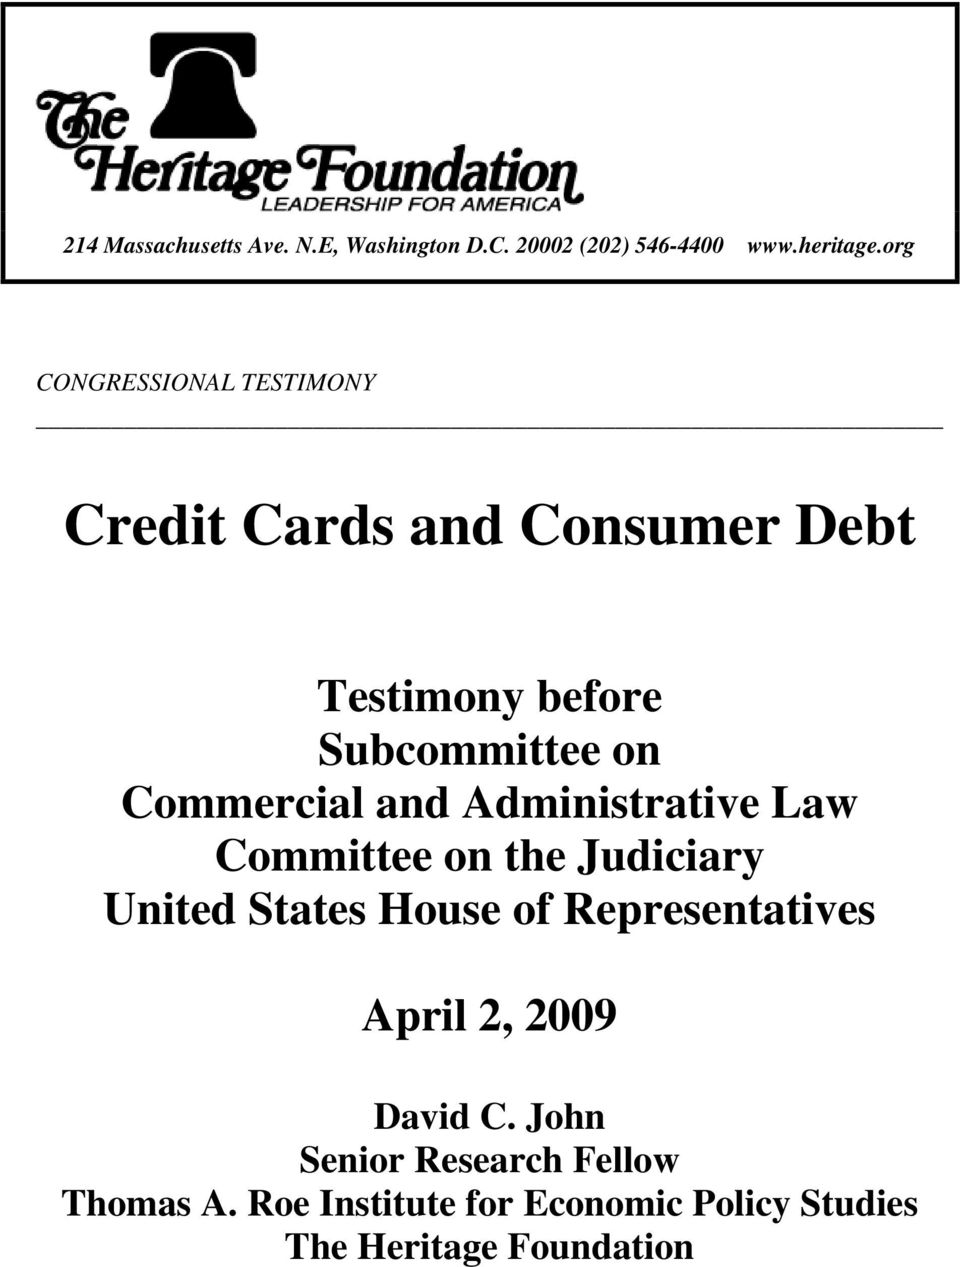 Commercial and Administrative Law Committee on the Judiciary United States House of